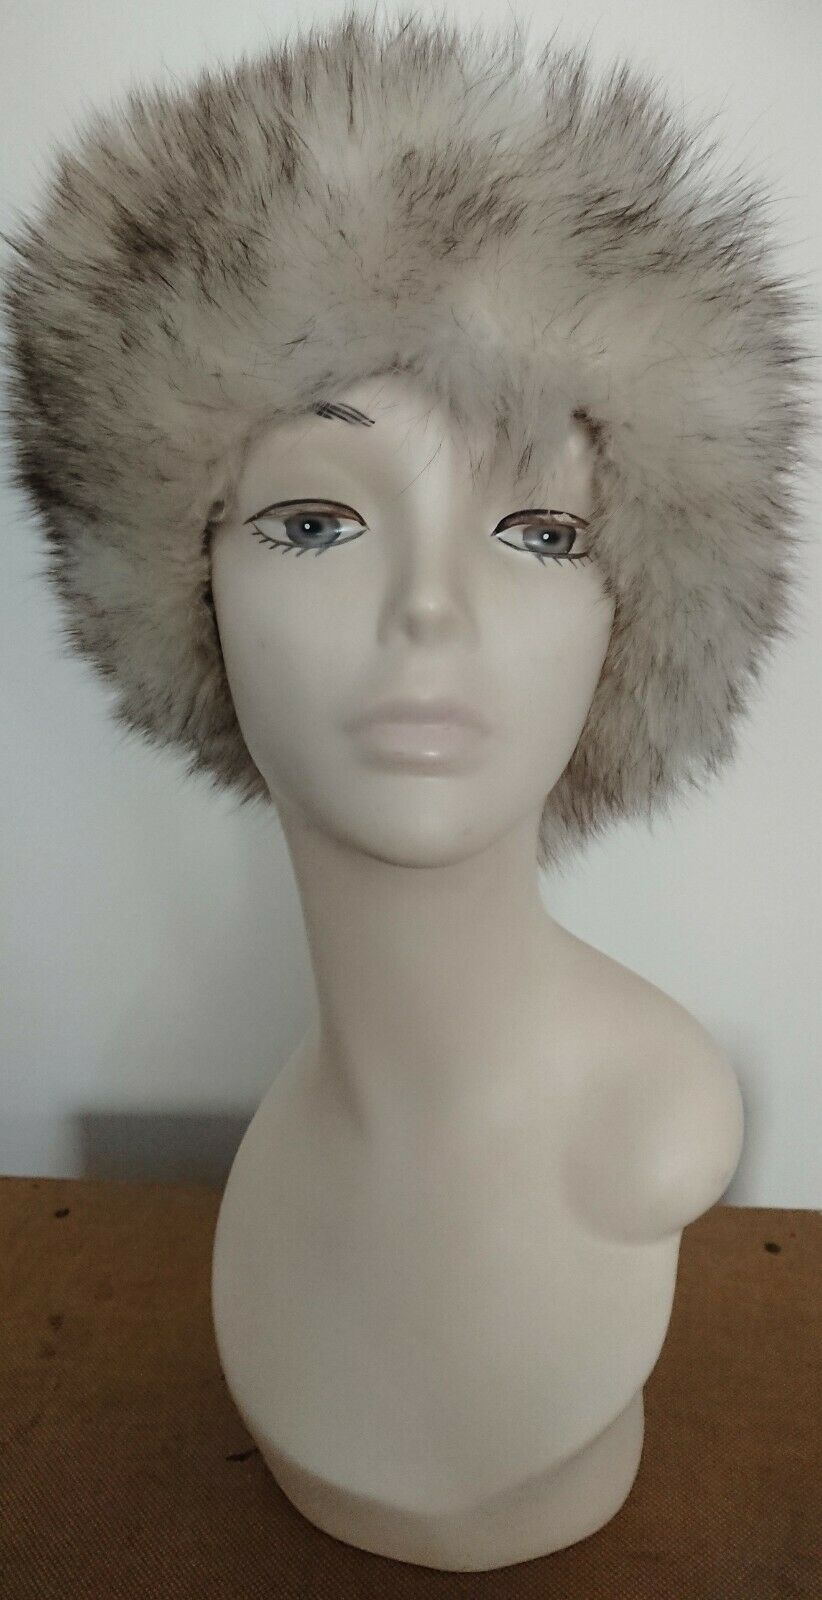 Vintage 1970's Cream and Grey Fur Cossack/Russian Hat.